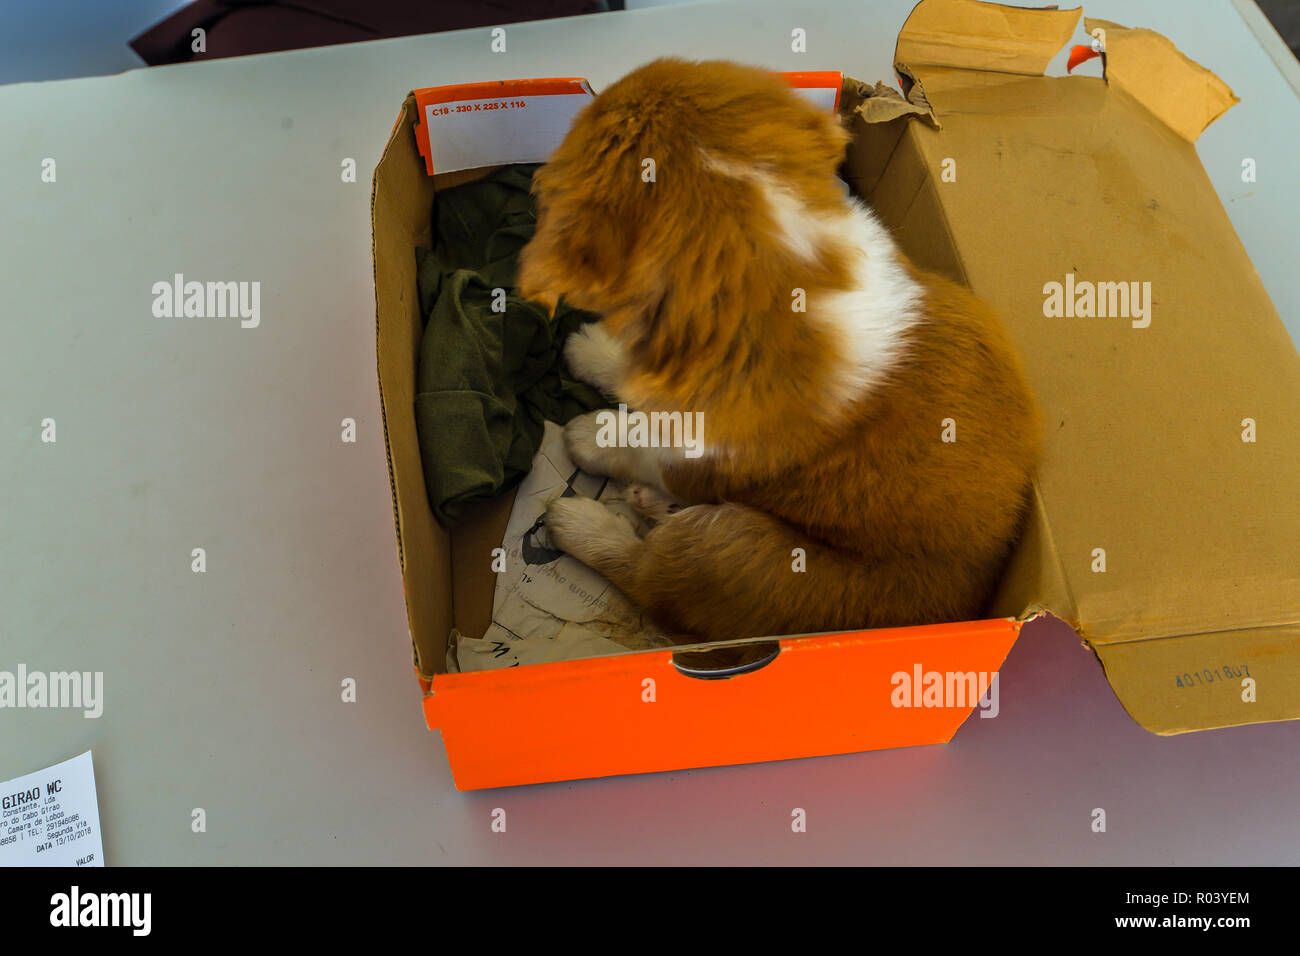 A young puppy sitting in a box - Stock Image